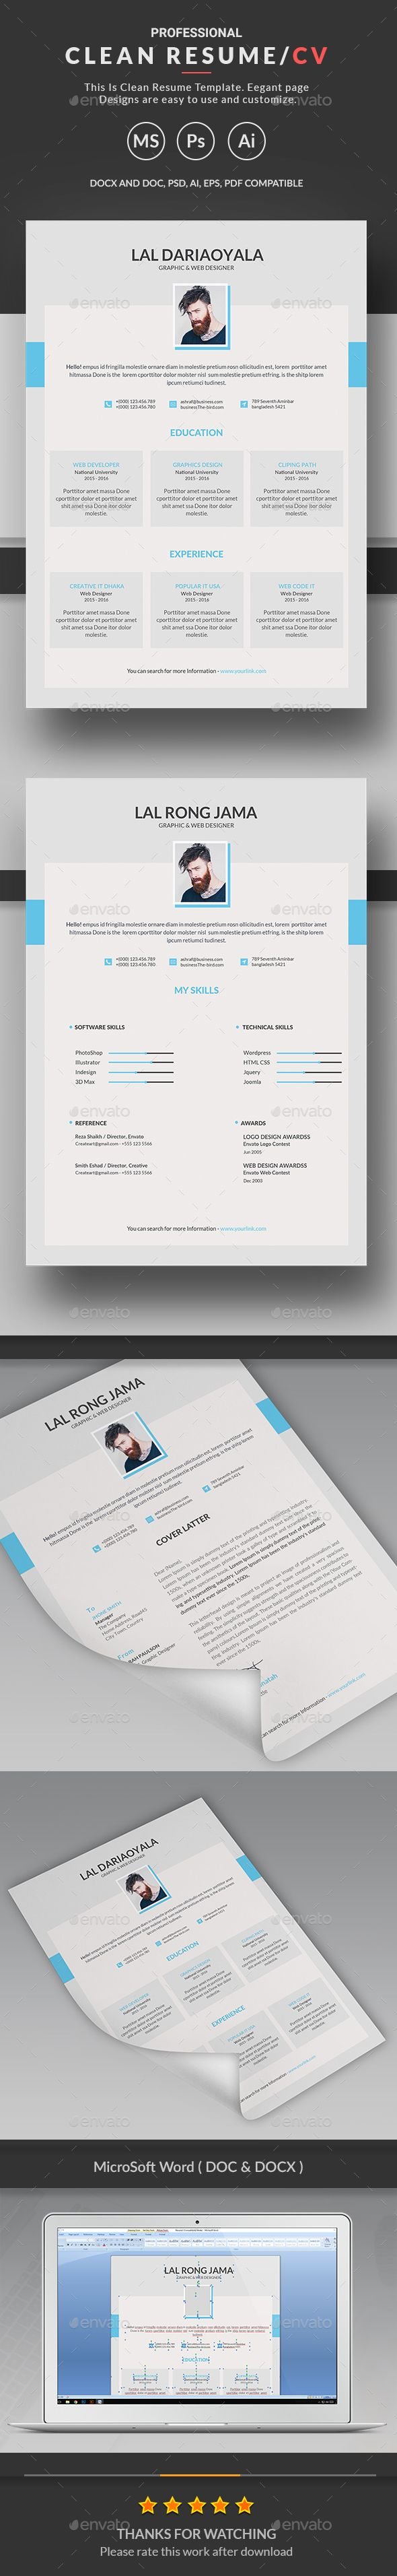 Clean Resume Download%0A Clean Resume by Createart Features of Resume Template   Size with bleed  settings    Color Versions     DPI resolution  u     CMYK color mode Profes